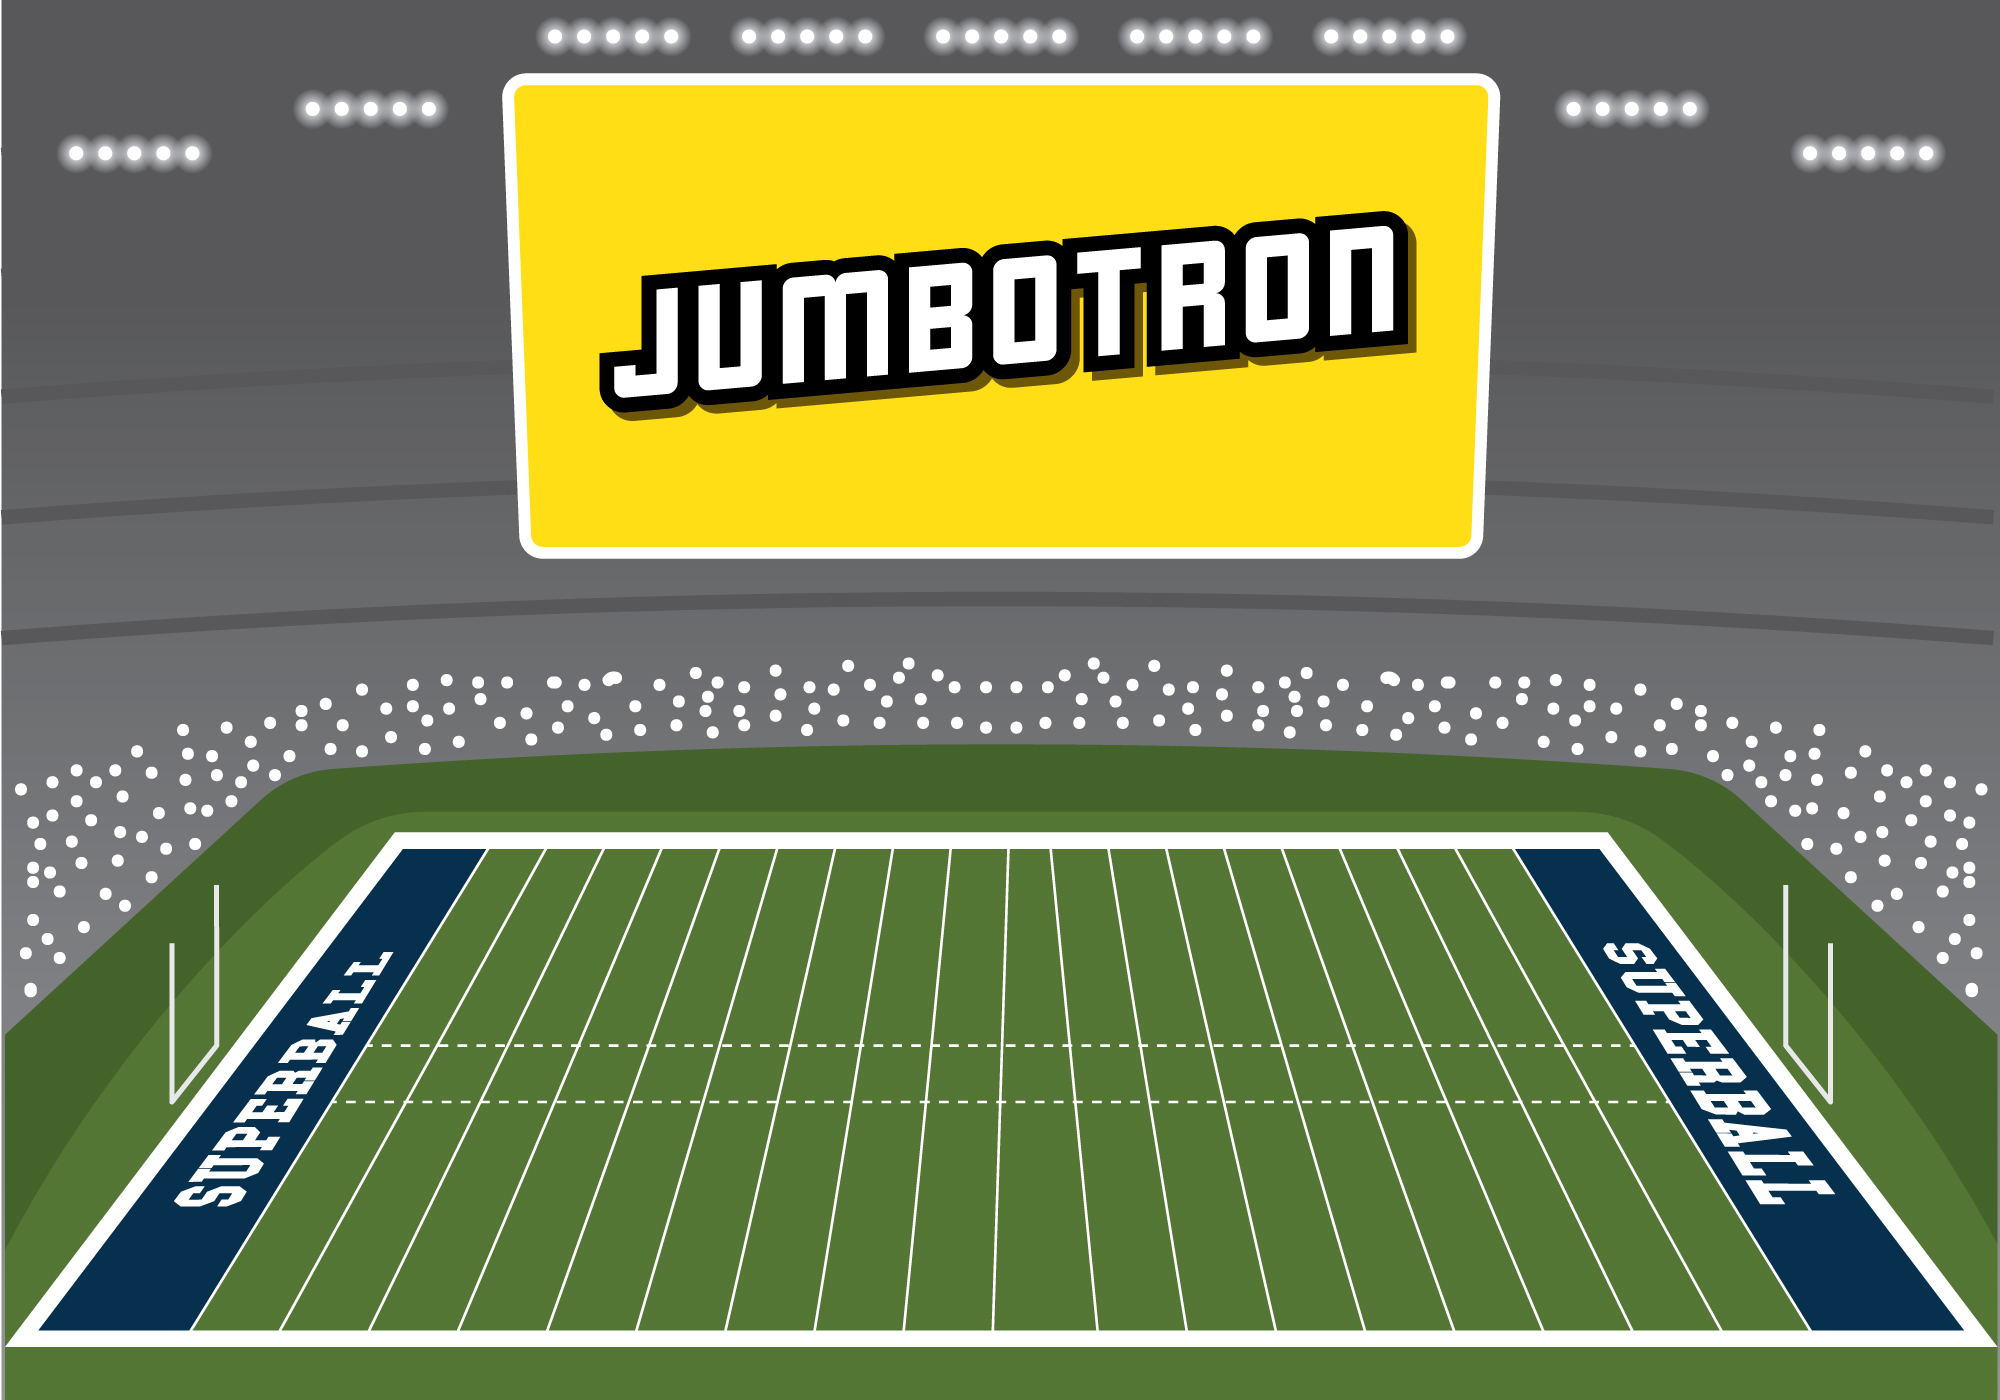 Big Screen On Rugby Field Download Free Vector Art